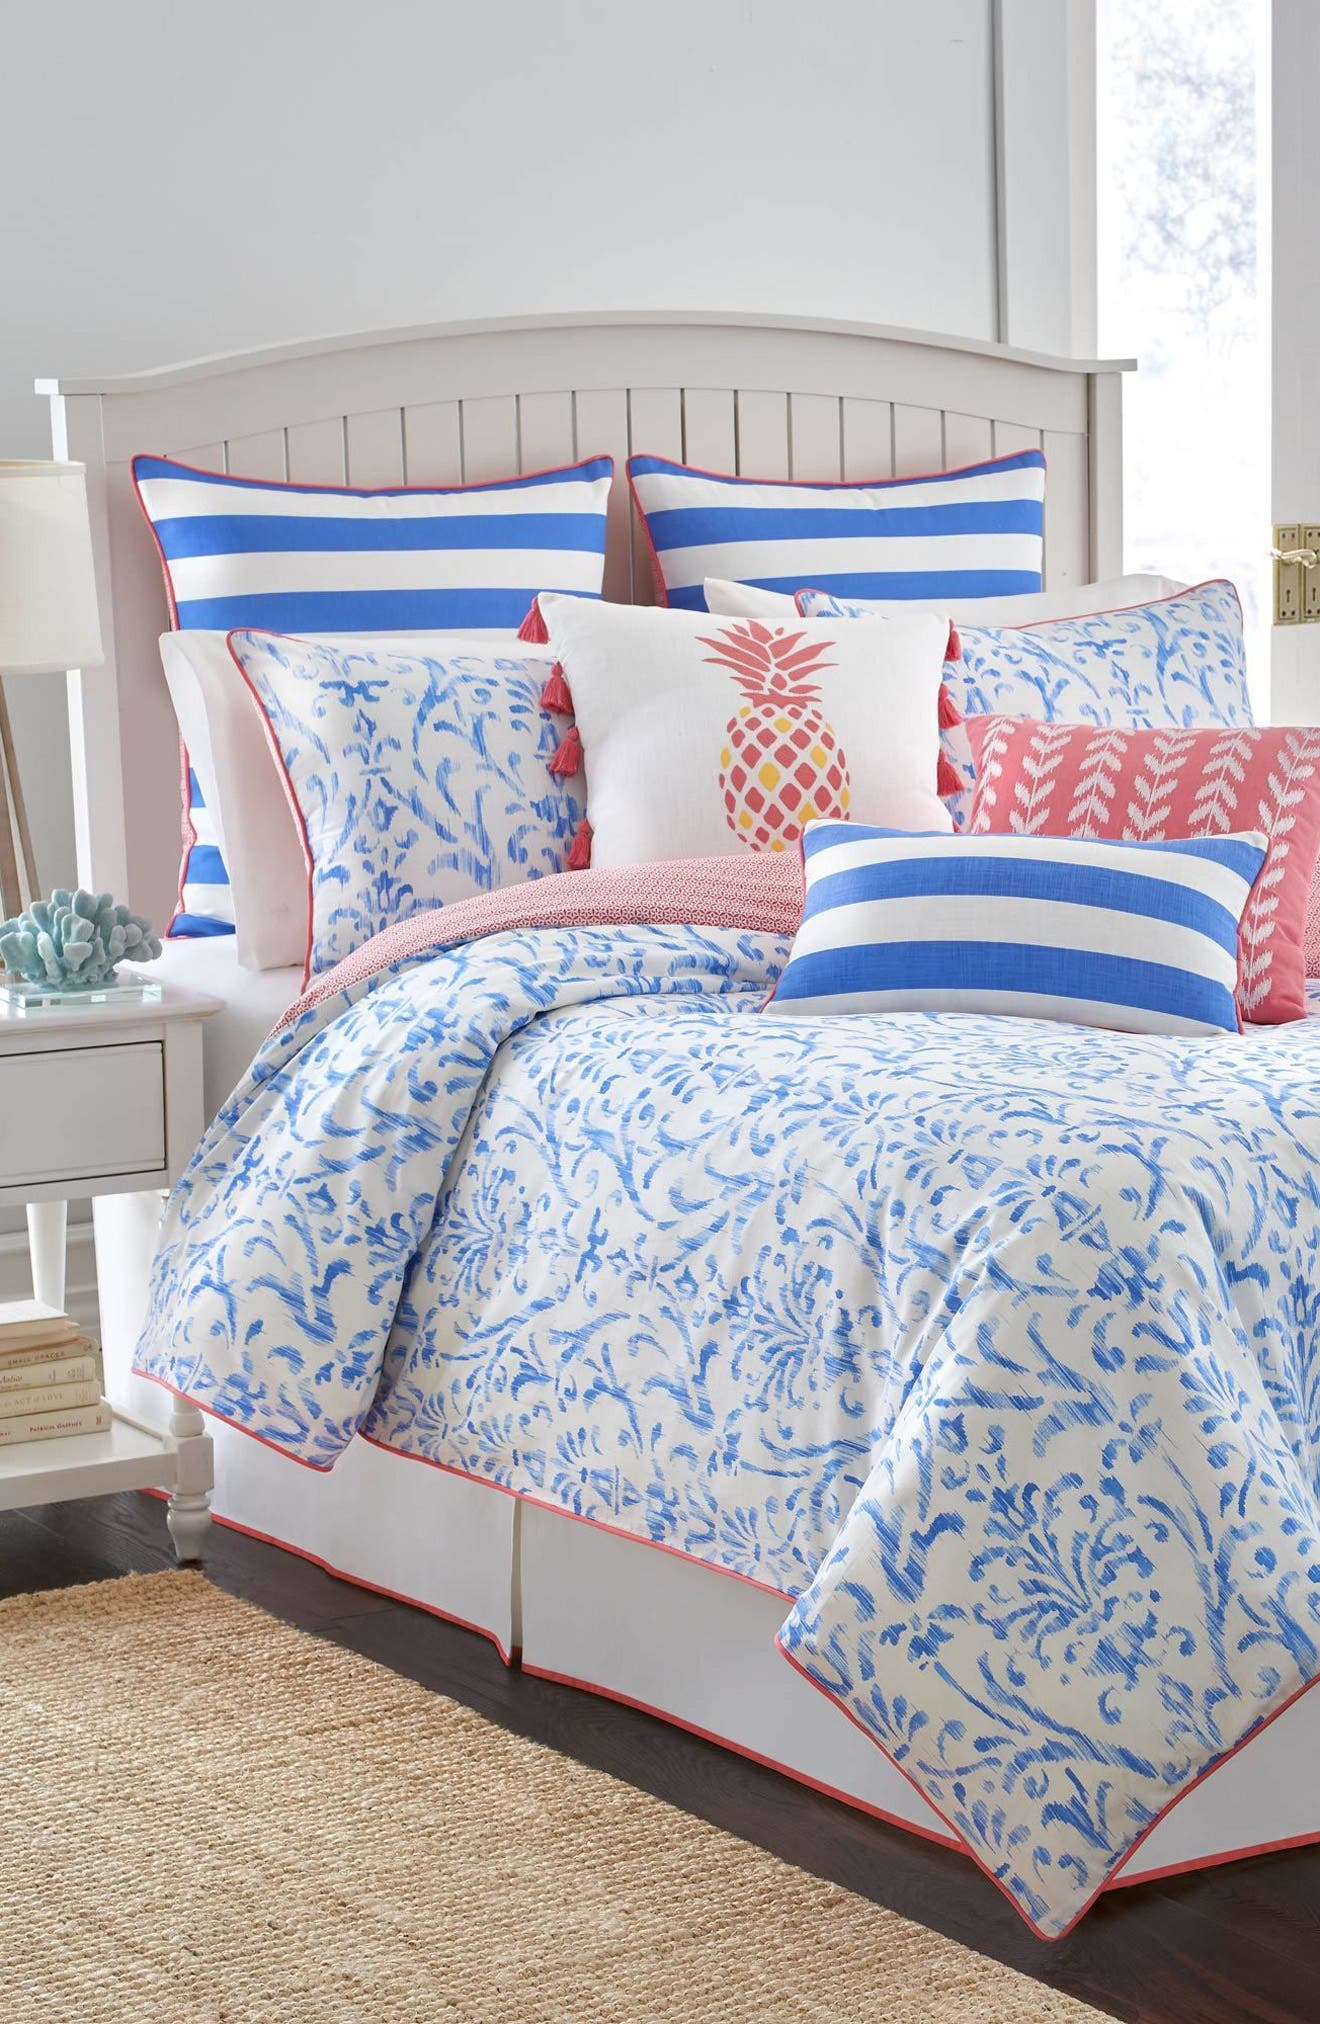 Main Image - Southern Tide Coastal Ikat Comforter, Sham & Bed Skirt Set